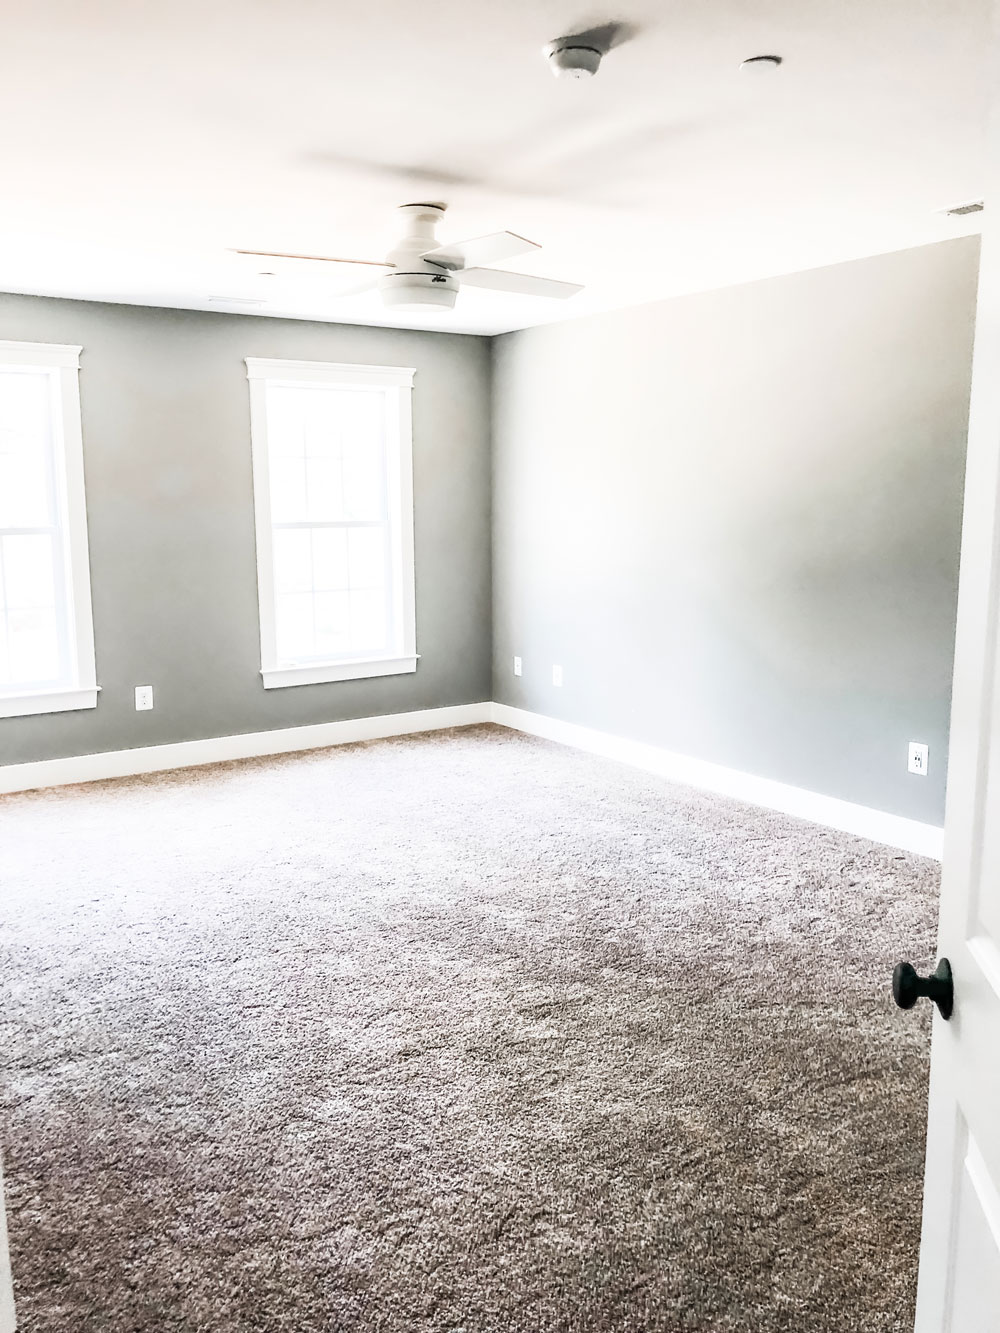 Custom home tour photos. This photo shows the master bedrooms. It has gray walls and beige carpet. There is a white ceiling fan as well and two large windows.